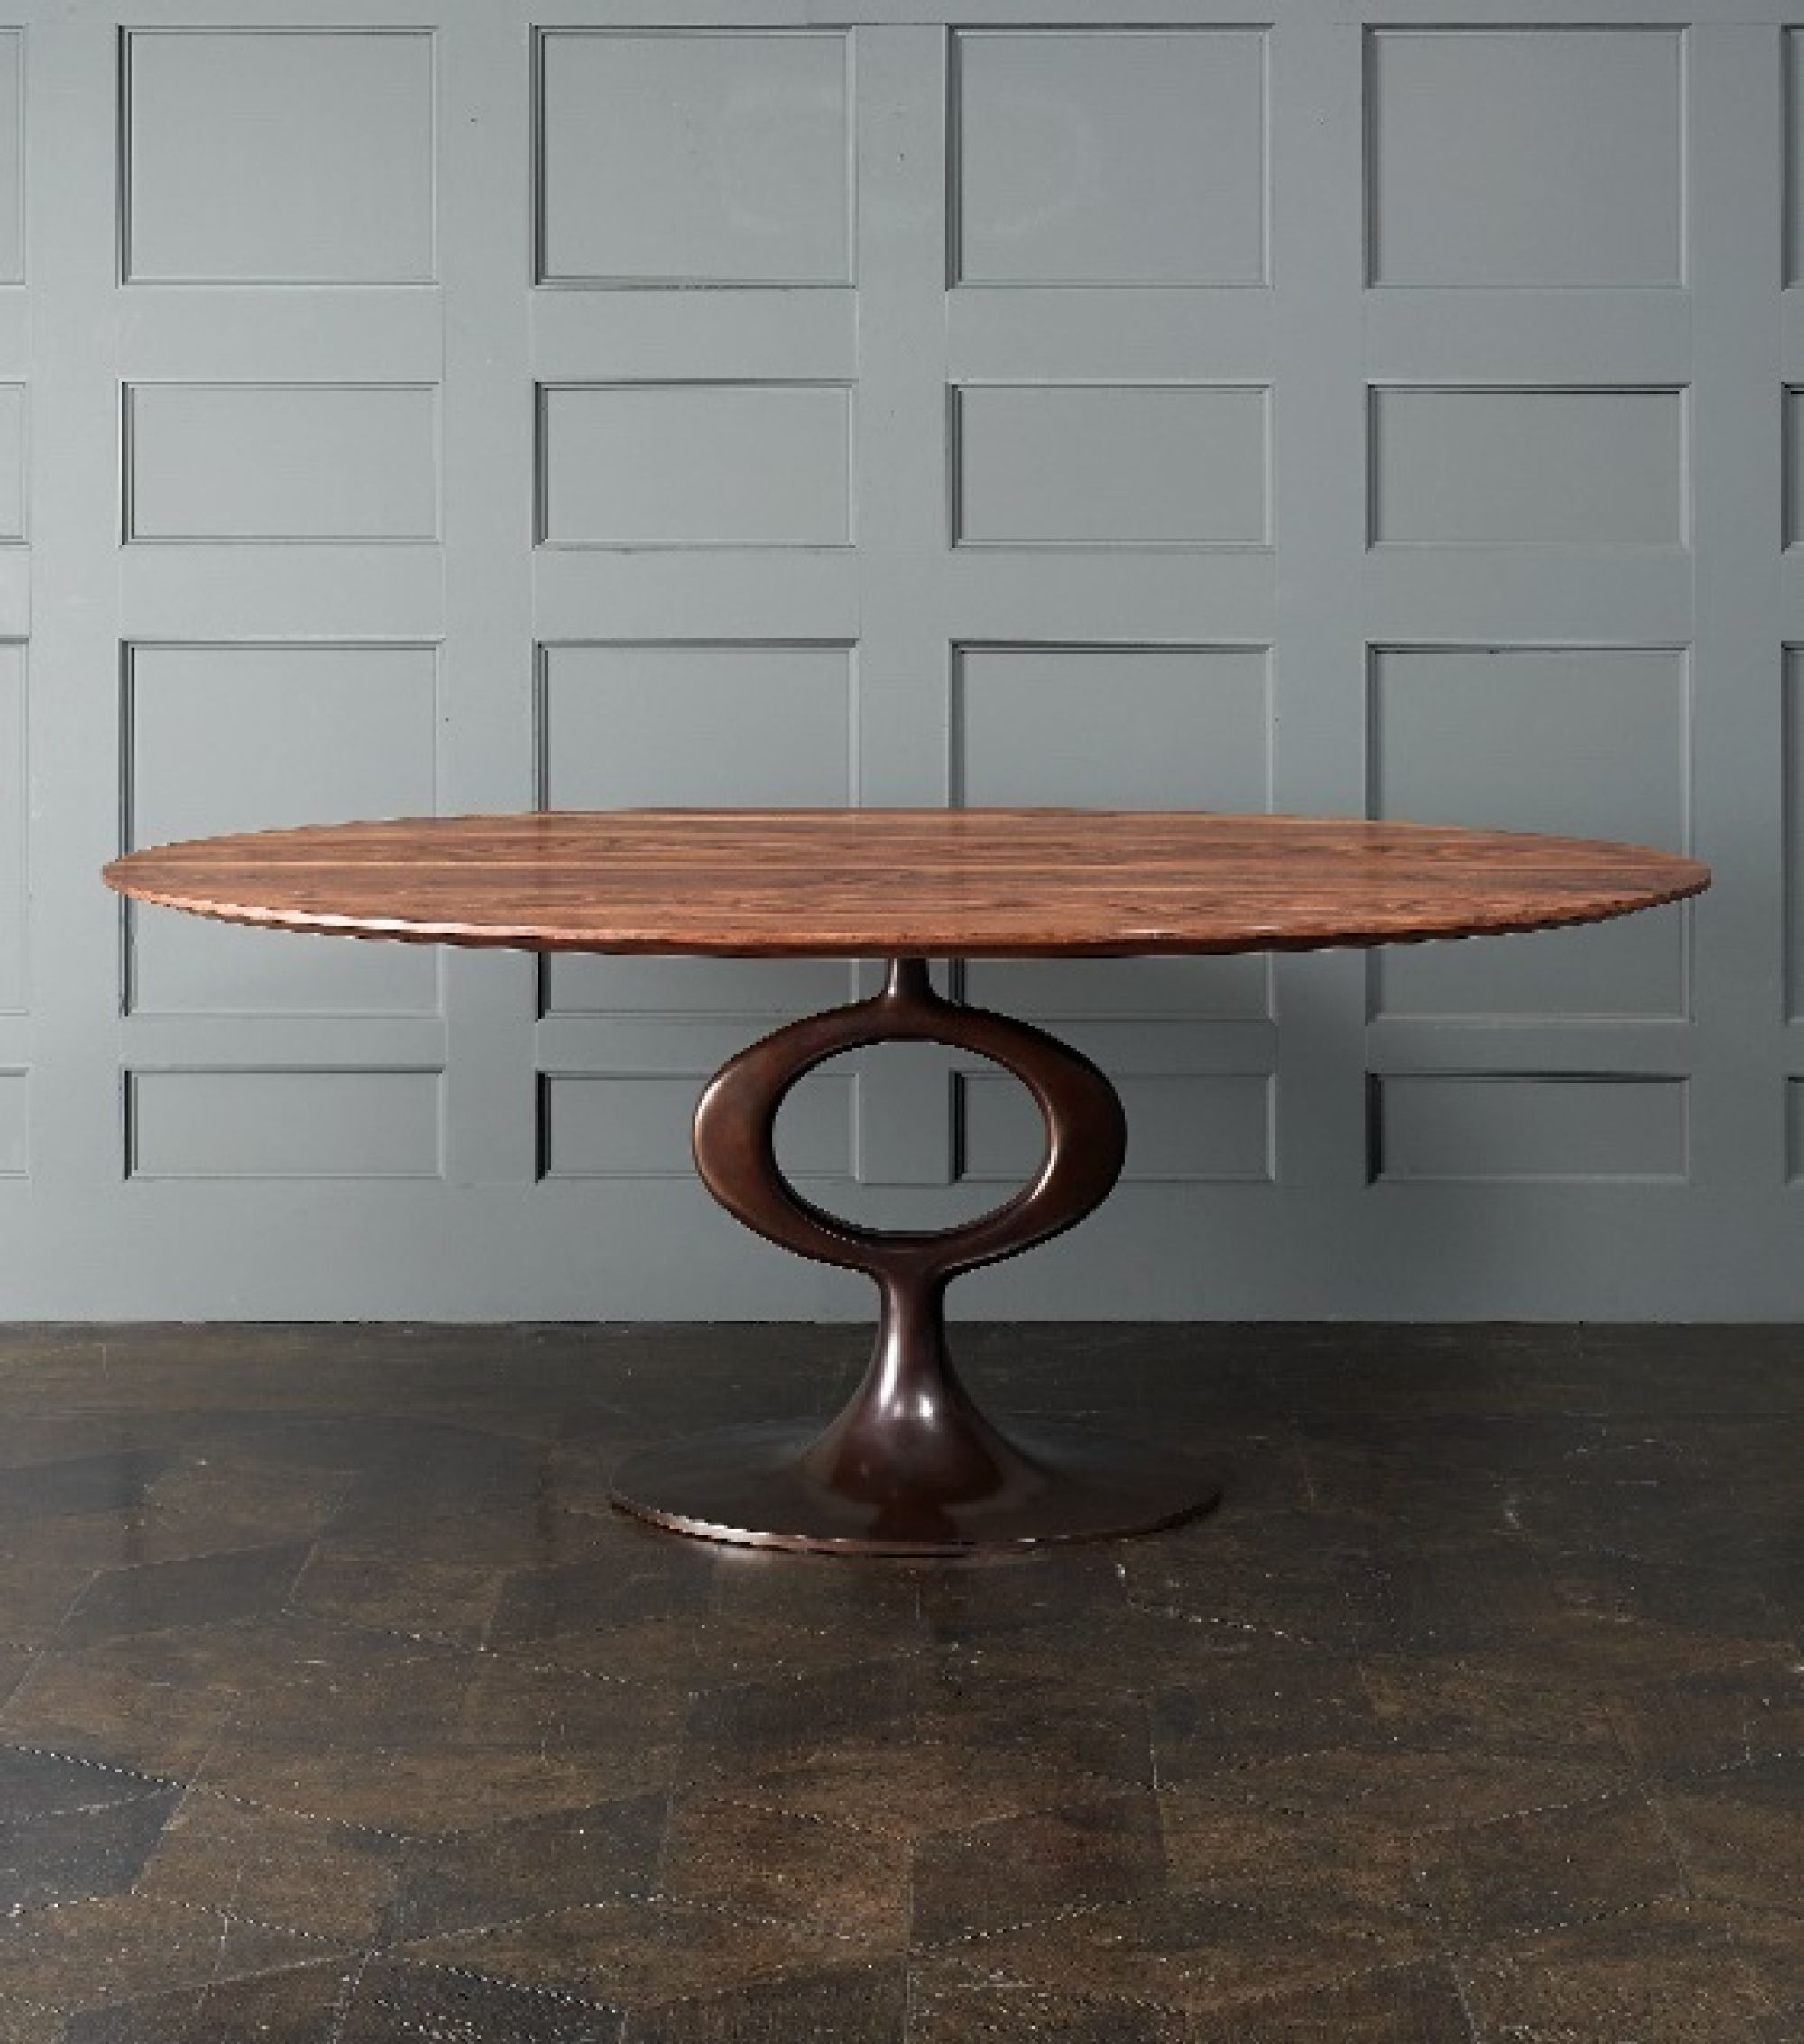 The Ellipse OP Table we often use in our projects is a contemporary piece from the Blackman Cruz Workshop.